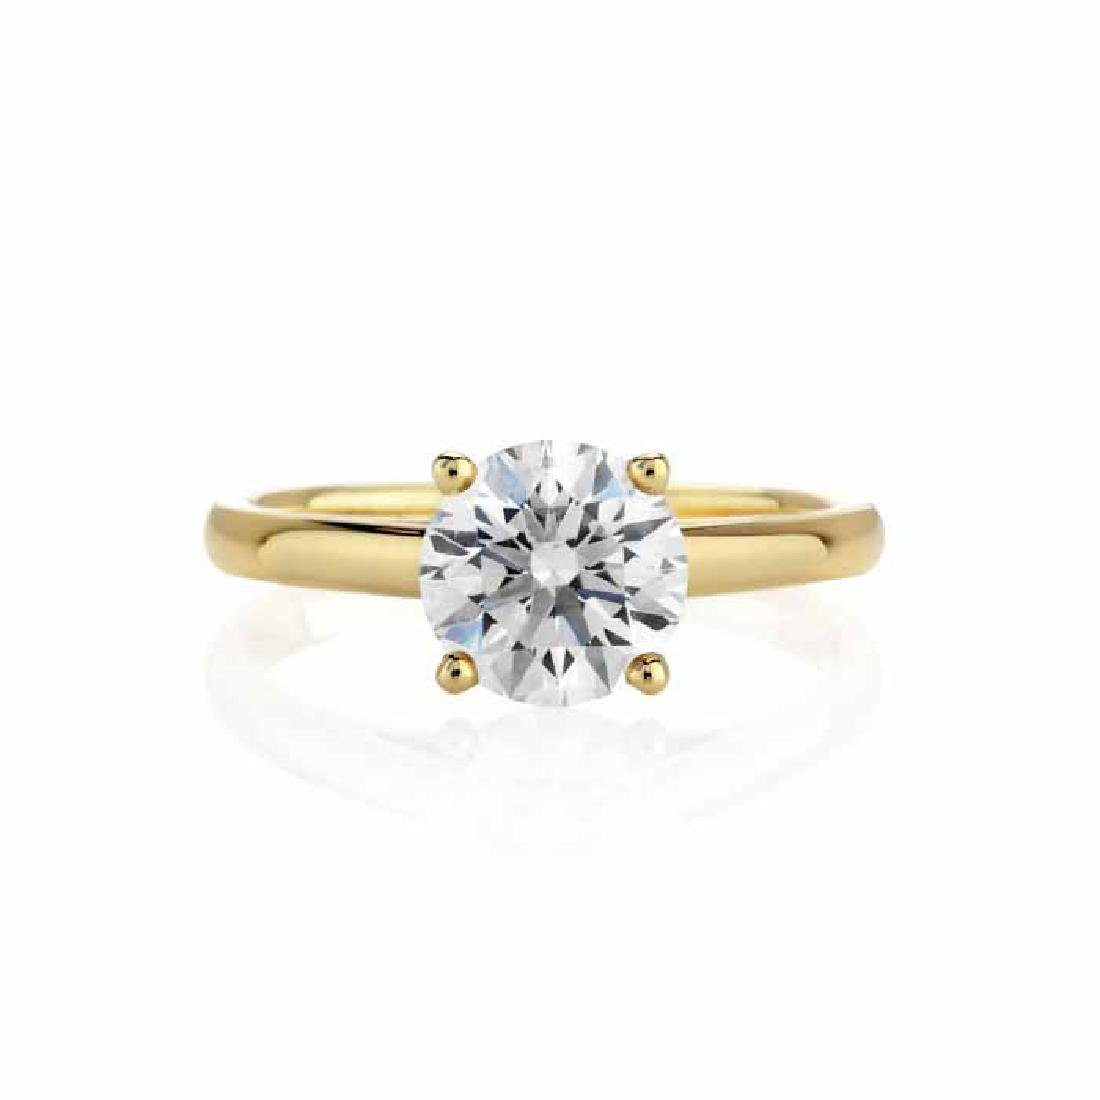 CERTIFIED 0.5 CTW D/VS1 ROUND DIAMOND SOLITAIRE RING IN